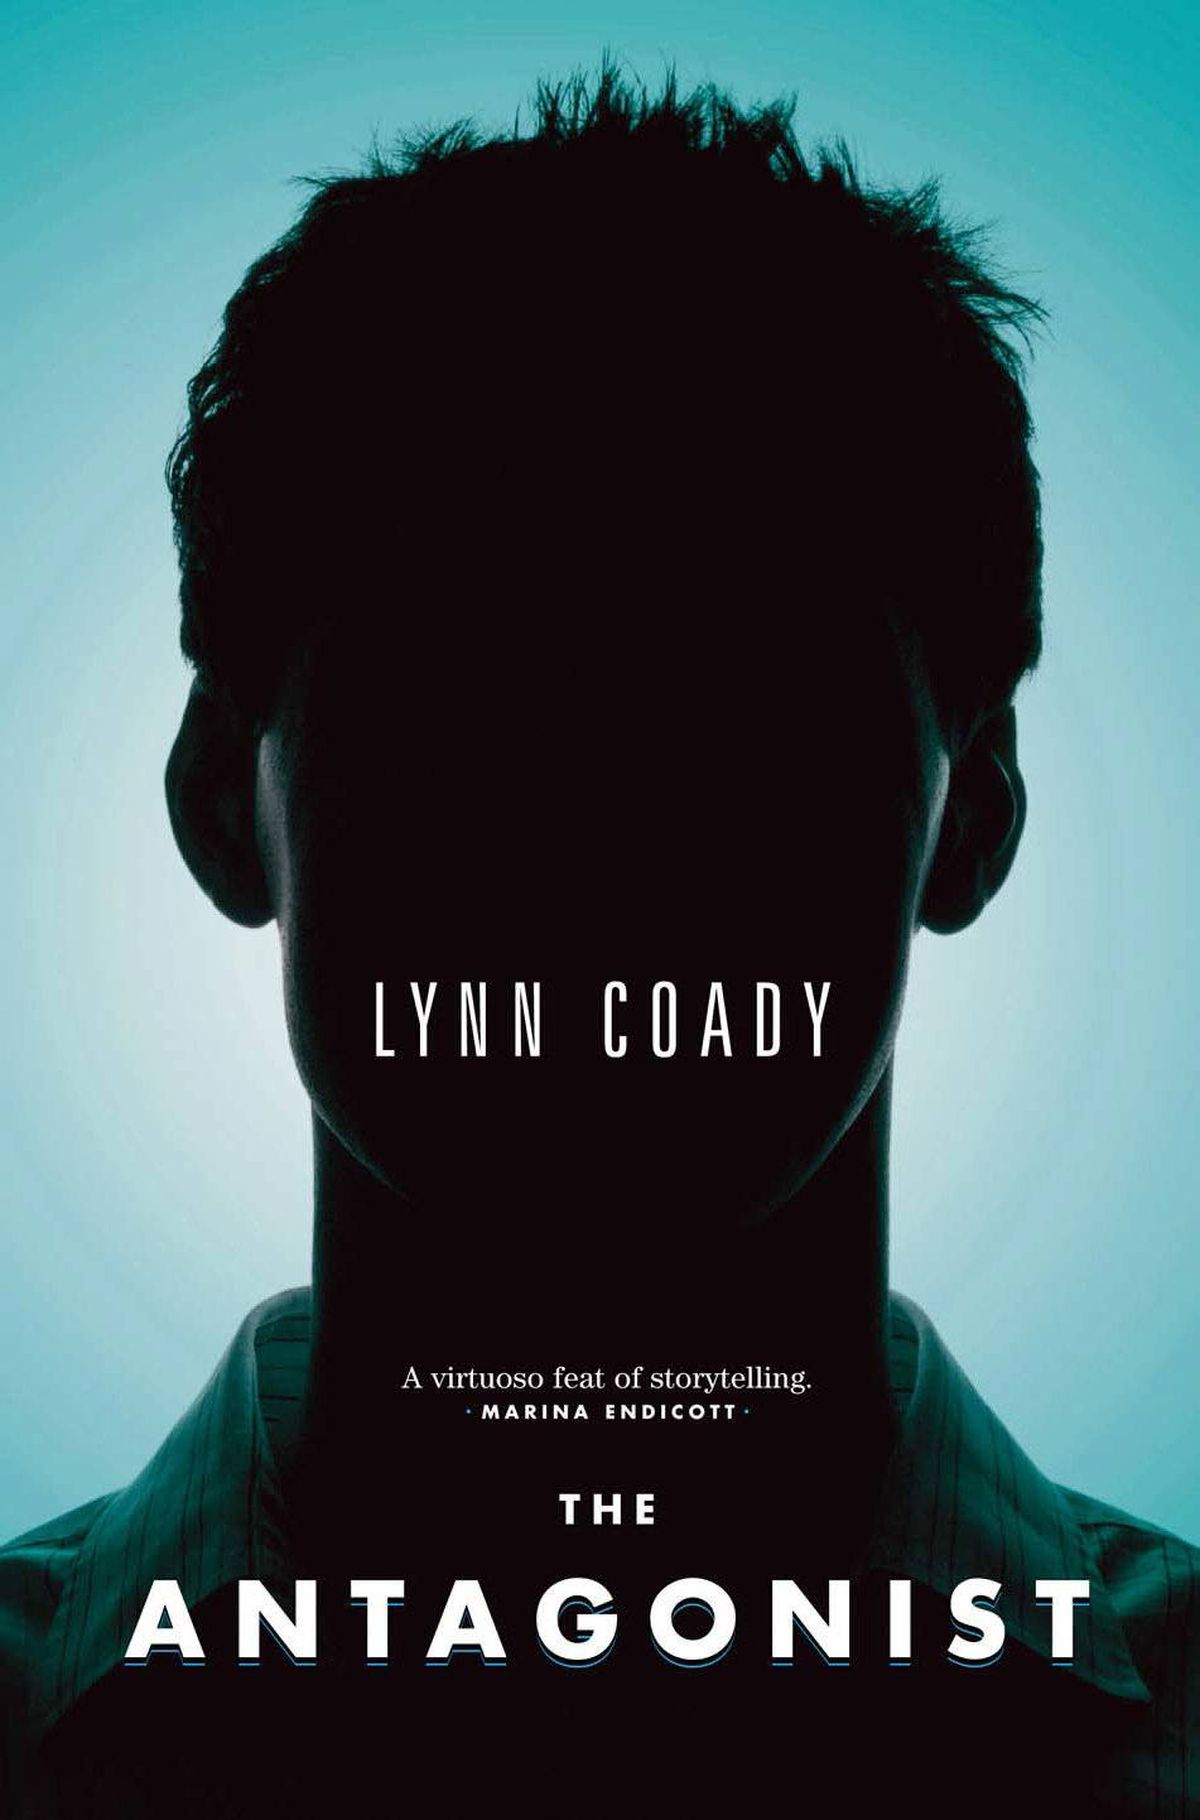 THE ANTAGONIST By Lynn Coady (Anansi) Rank, the protagonist of Coady's angry, funny, tender work, comes across himself in a novel by a former university pal. Outraged, he fires off a string of e-mails about what it was like to grow up as a huge boy continually mistaken for a tough guy, and who always gets the enforcer role on a hockey team. – Giles Blunt